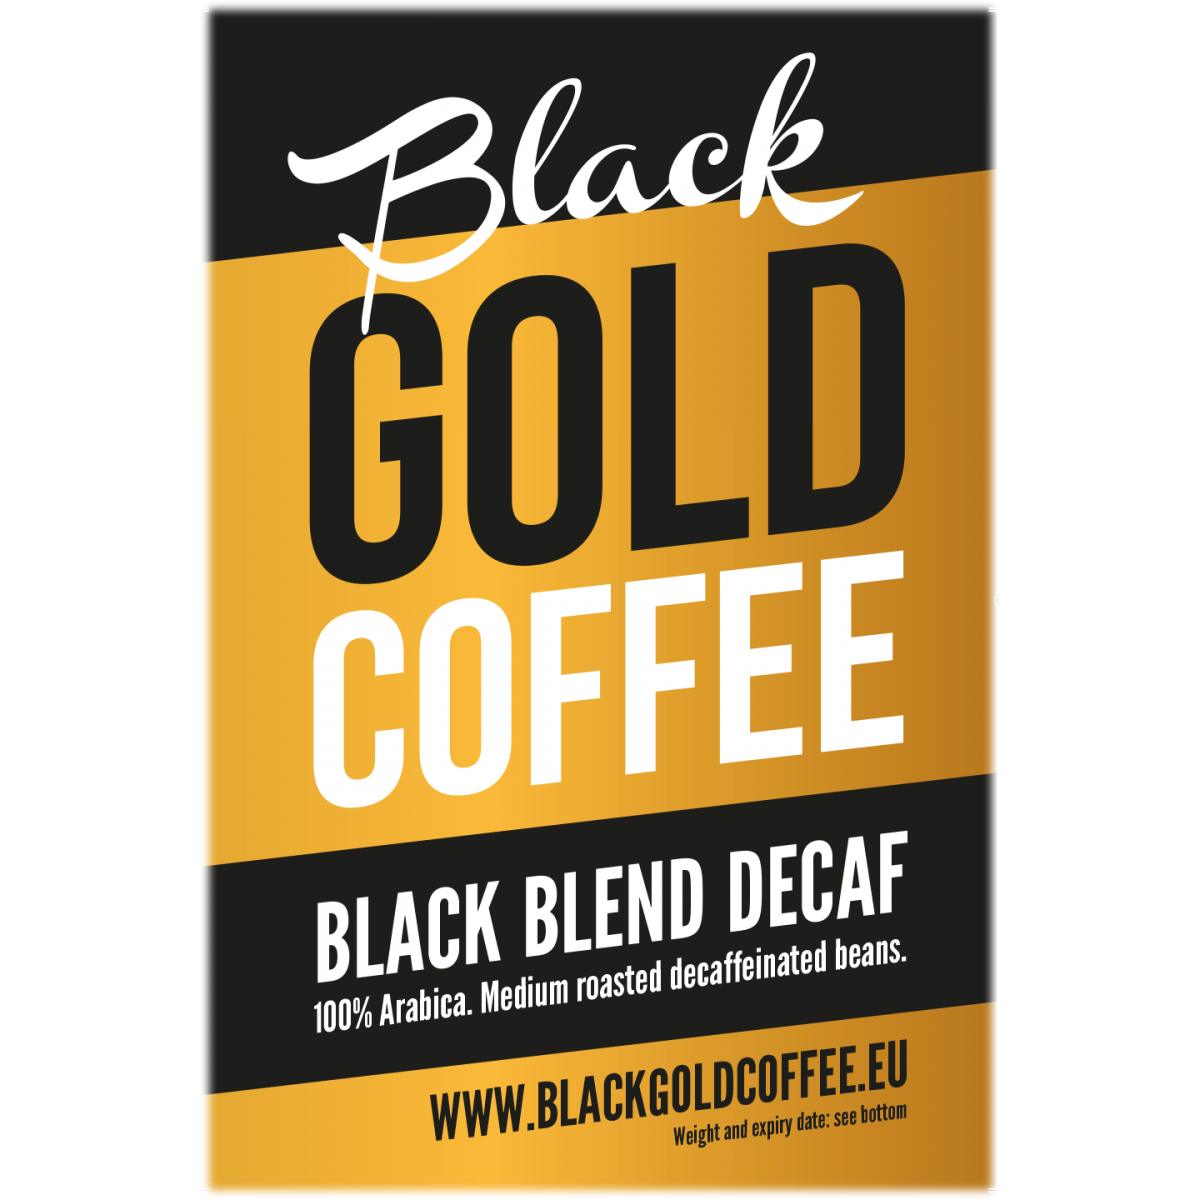 Black Gold Coffee Decaf